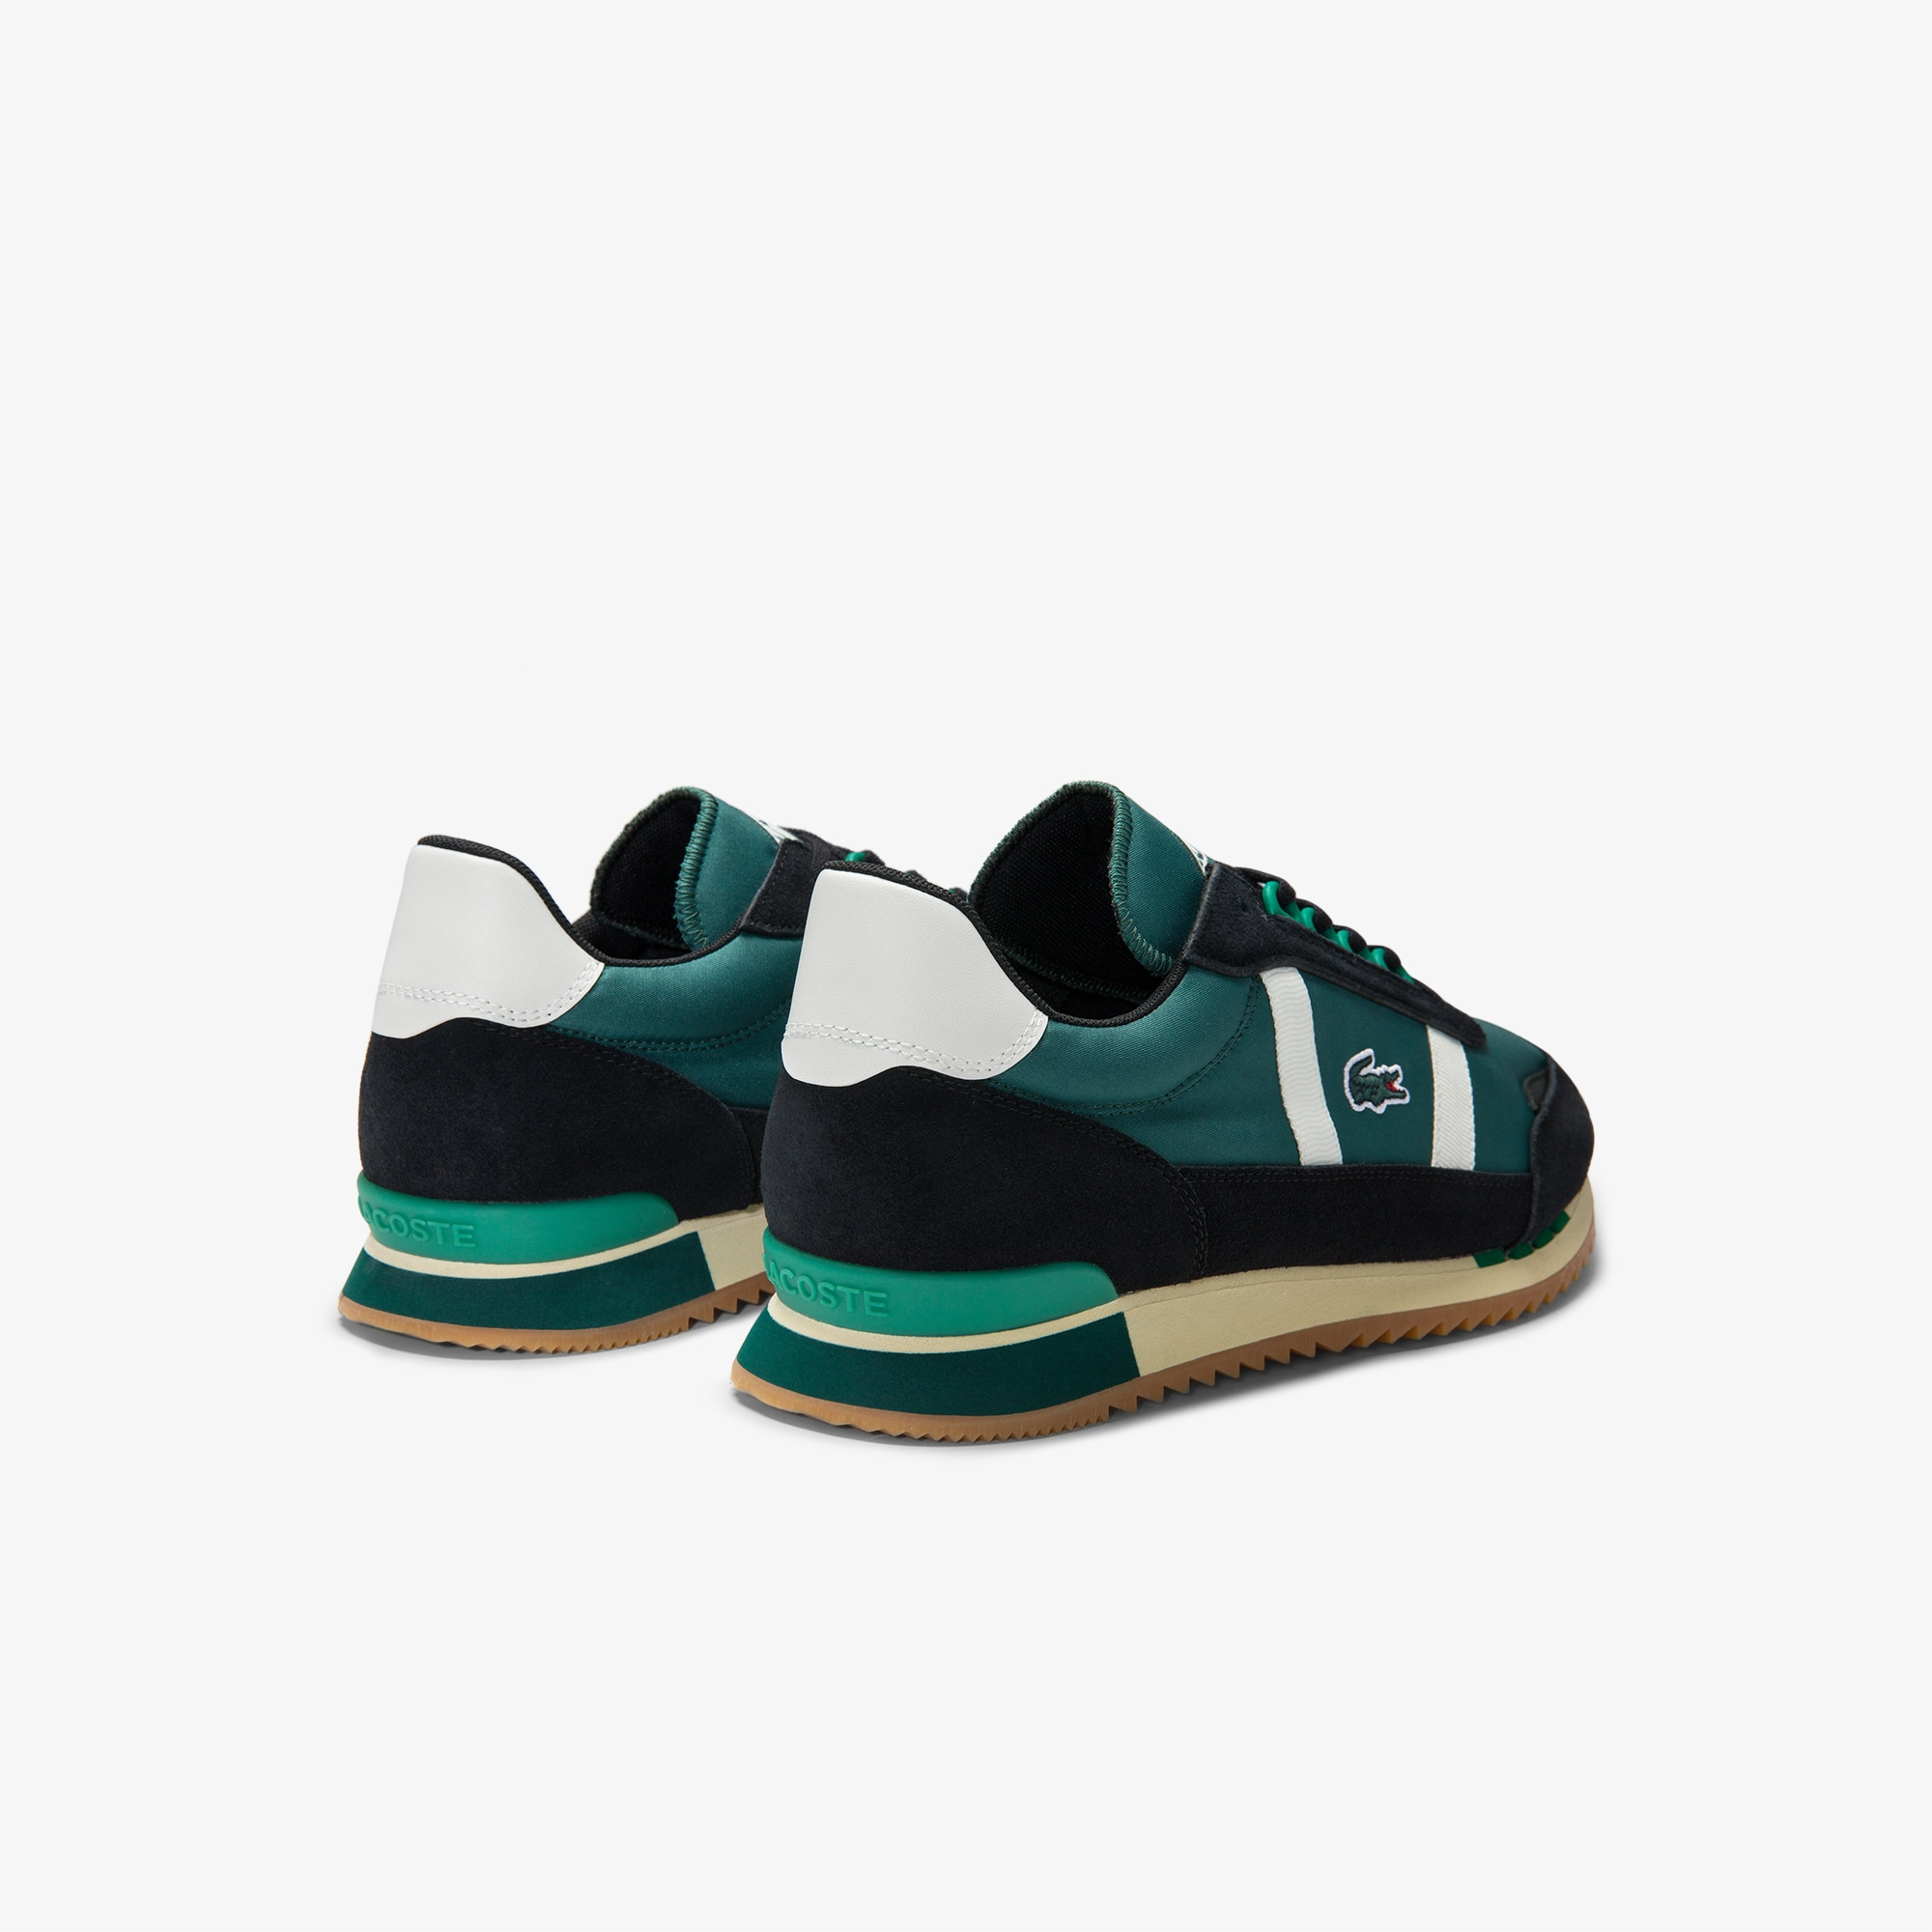 Men's Partner Retro Suede-Paneled Sneakers